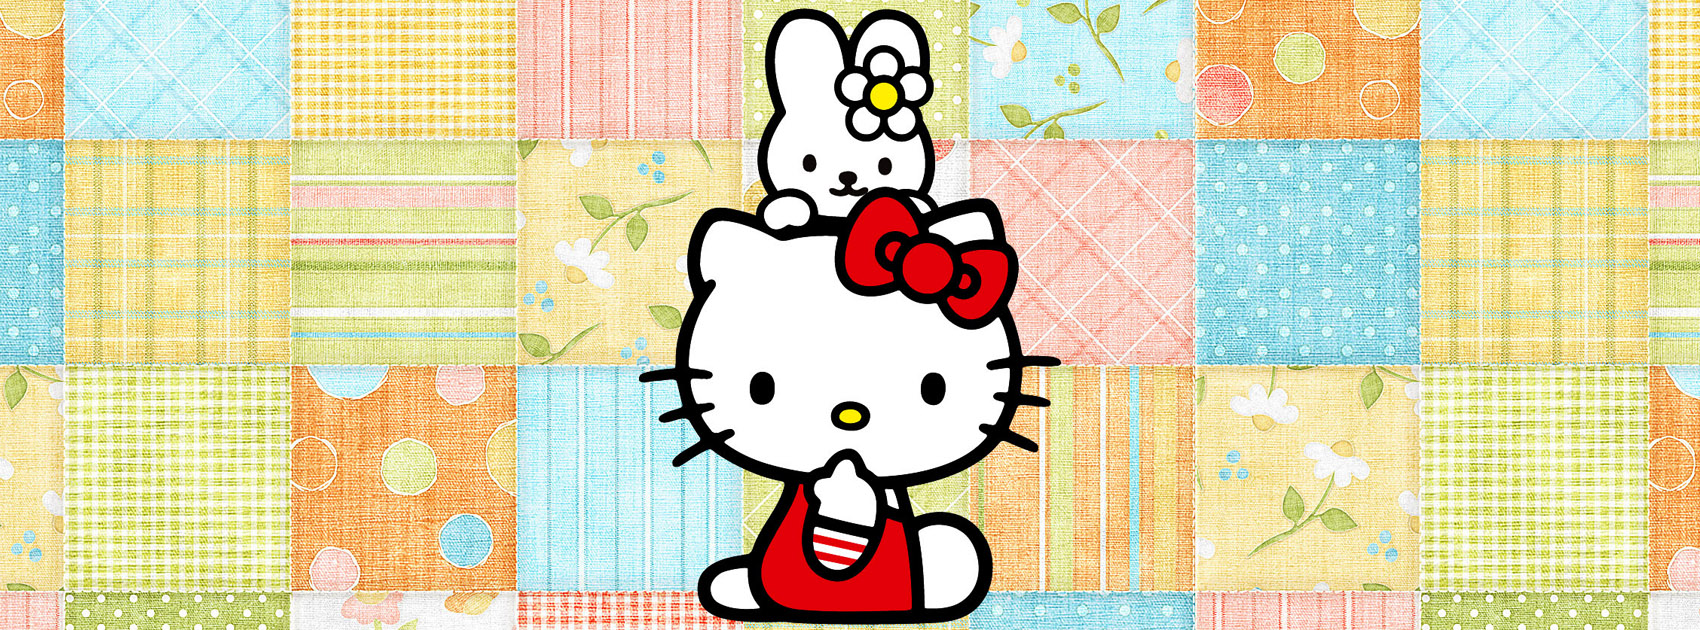 hello kitty cathy quilt background facebook timeline cover